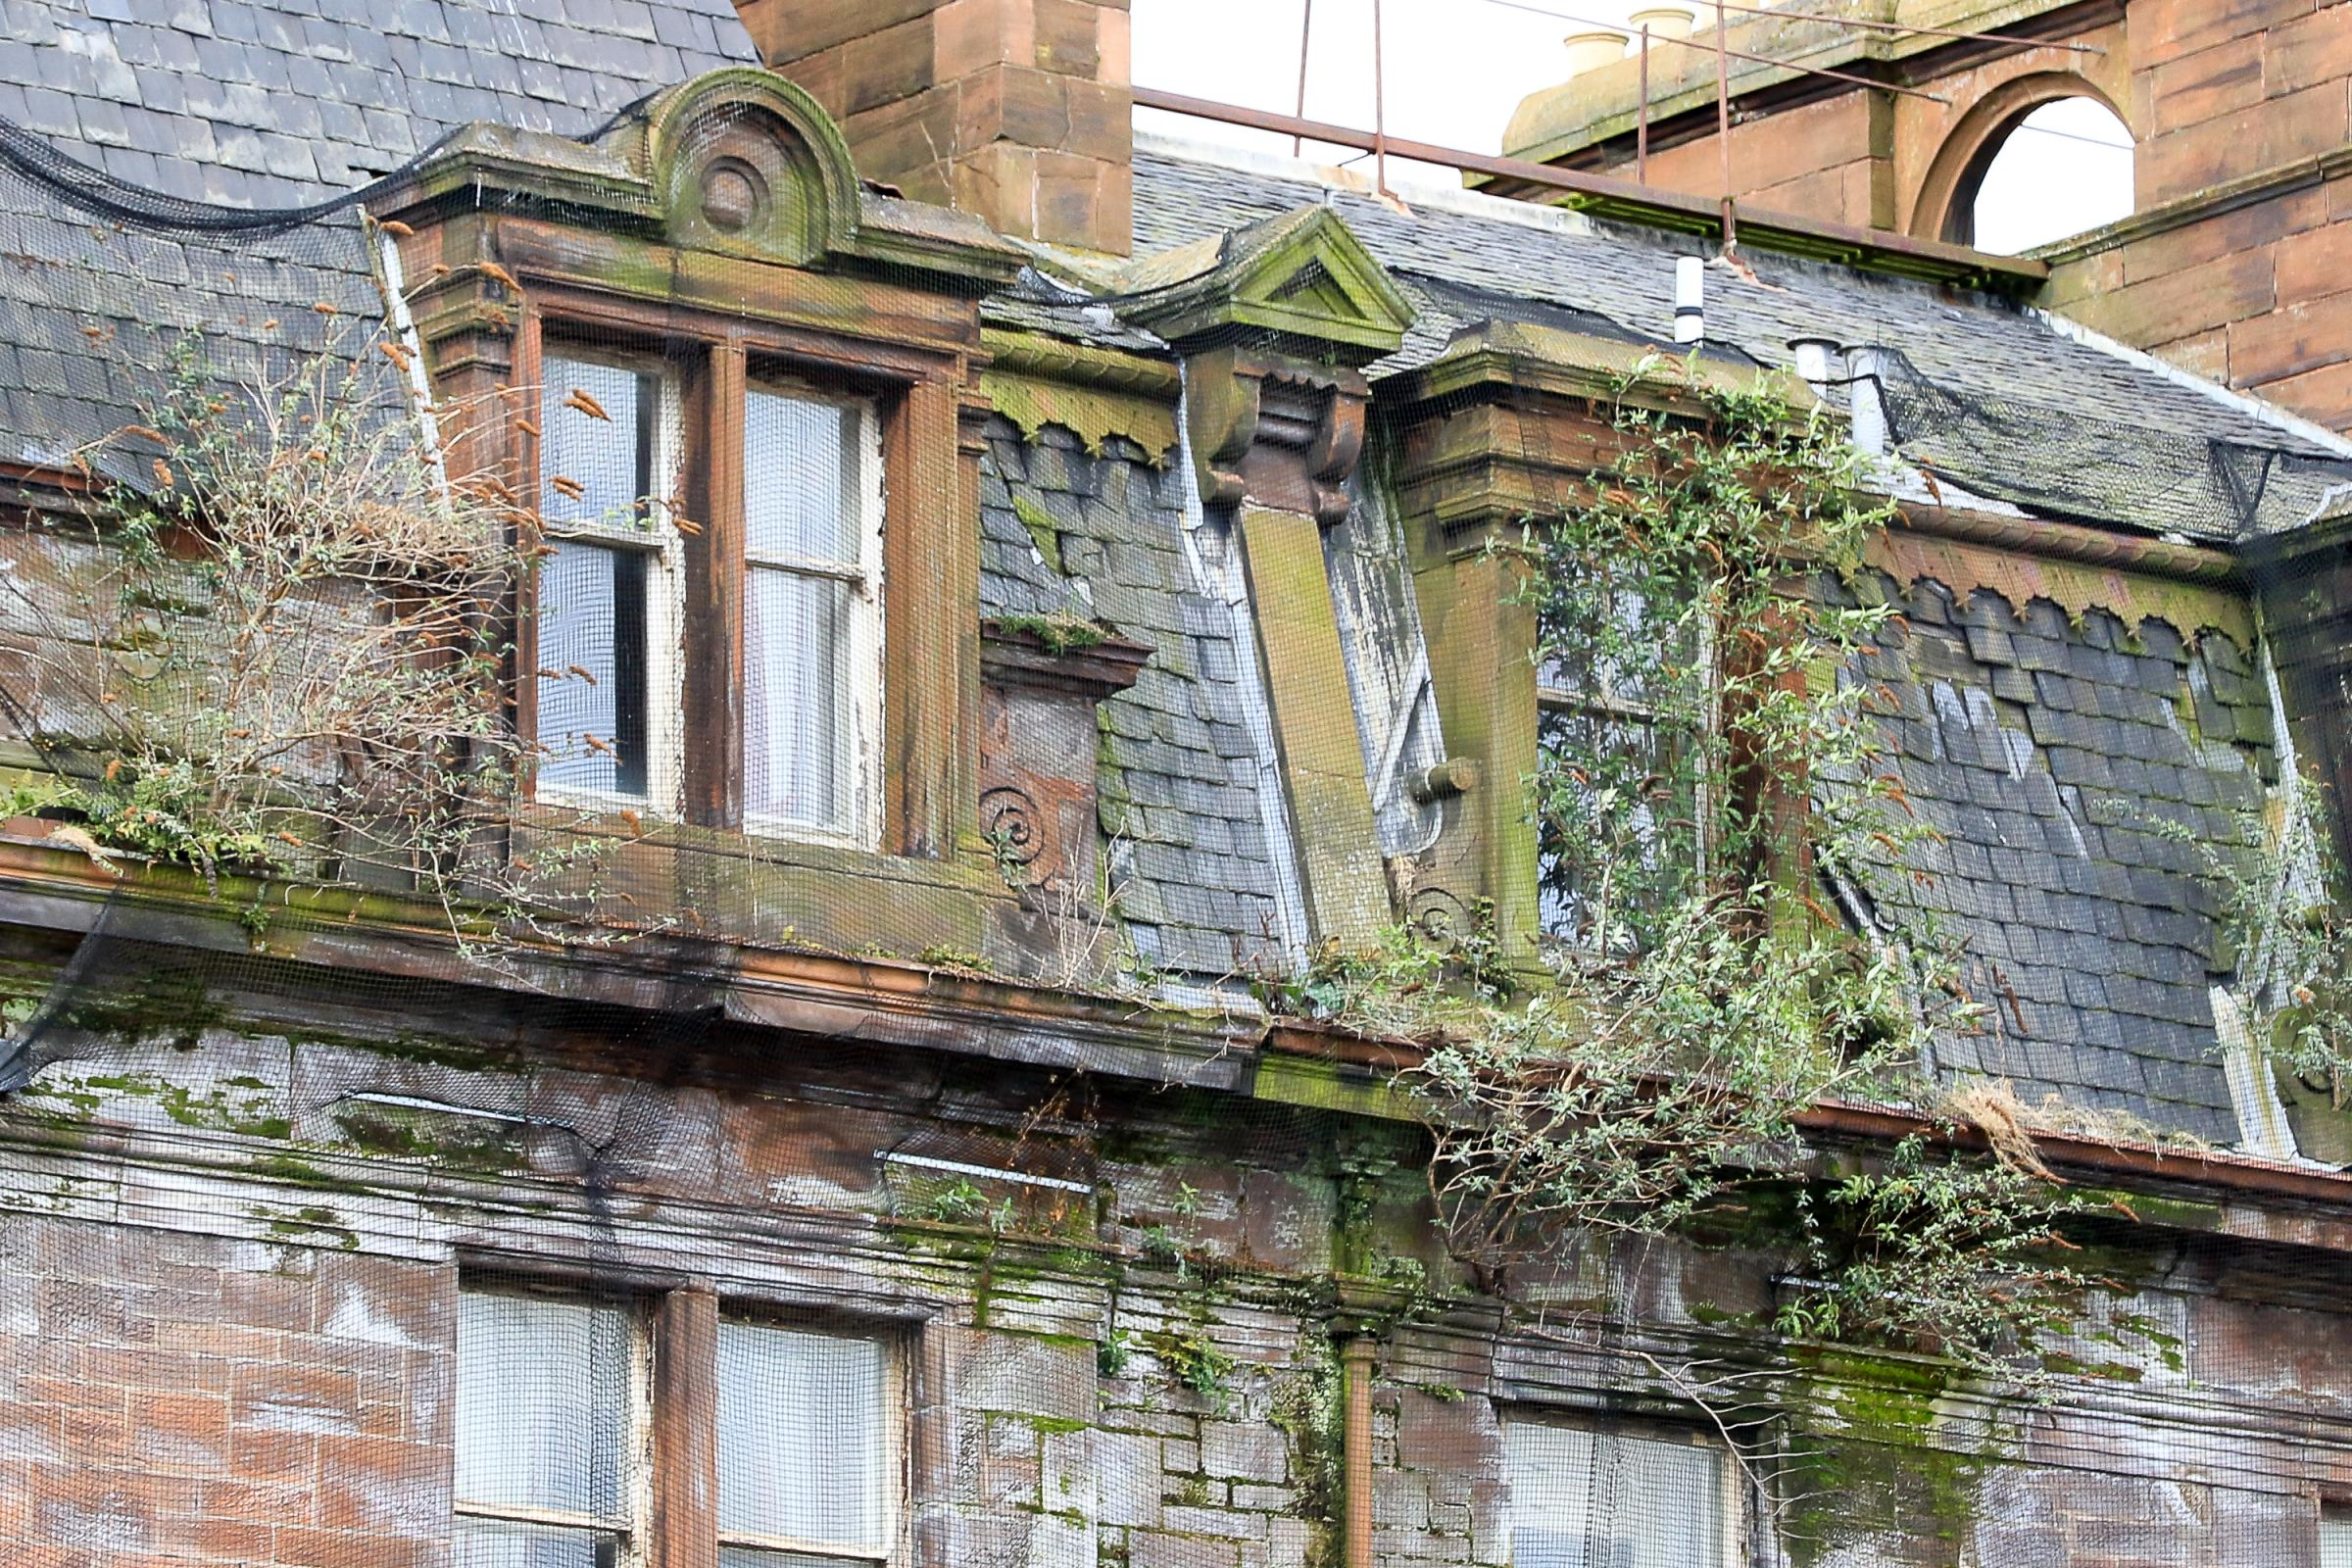 Iconic Ayr Station Hotel's sad fall into disrepair